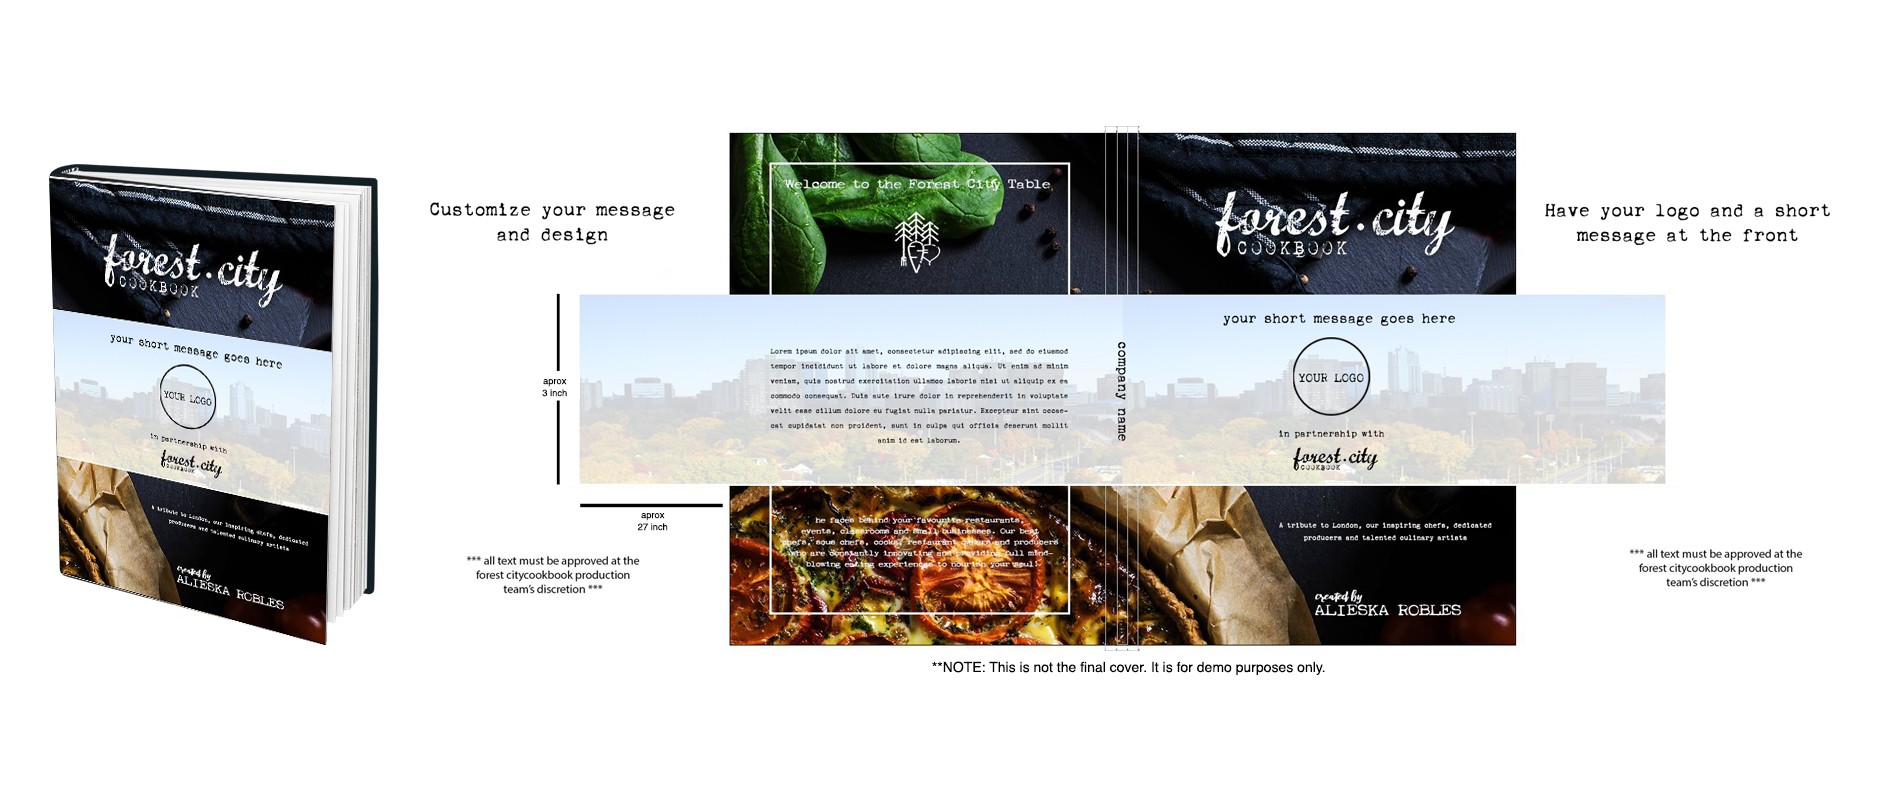 Forest City Cookbook - Marketing band